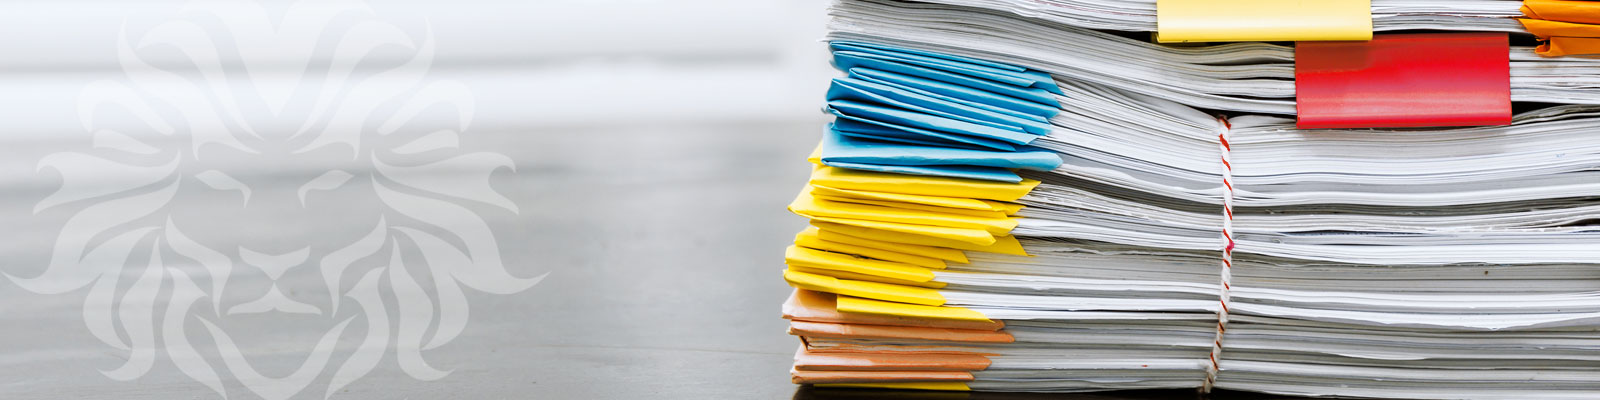 Insurance-Law-Stack-of-Paperwork